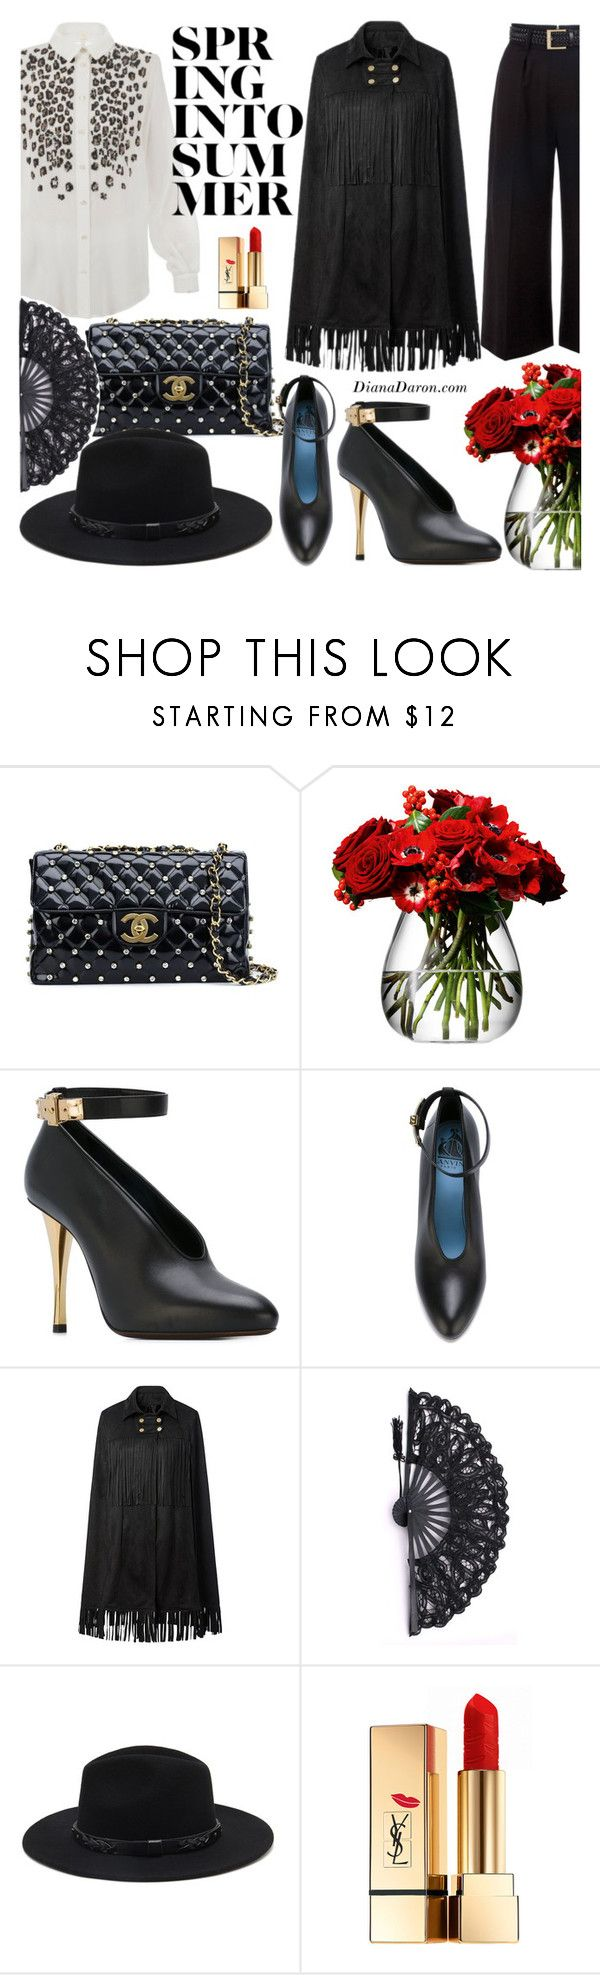 """Summer in Spain"" by dianadaron ❤ liked on Polyvore featuring Chanel, LSA International, Lanvin, Forever 21 and Yves Saint Laurent"